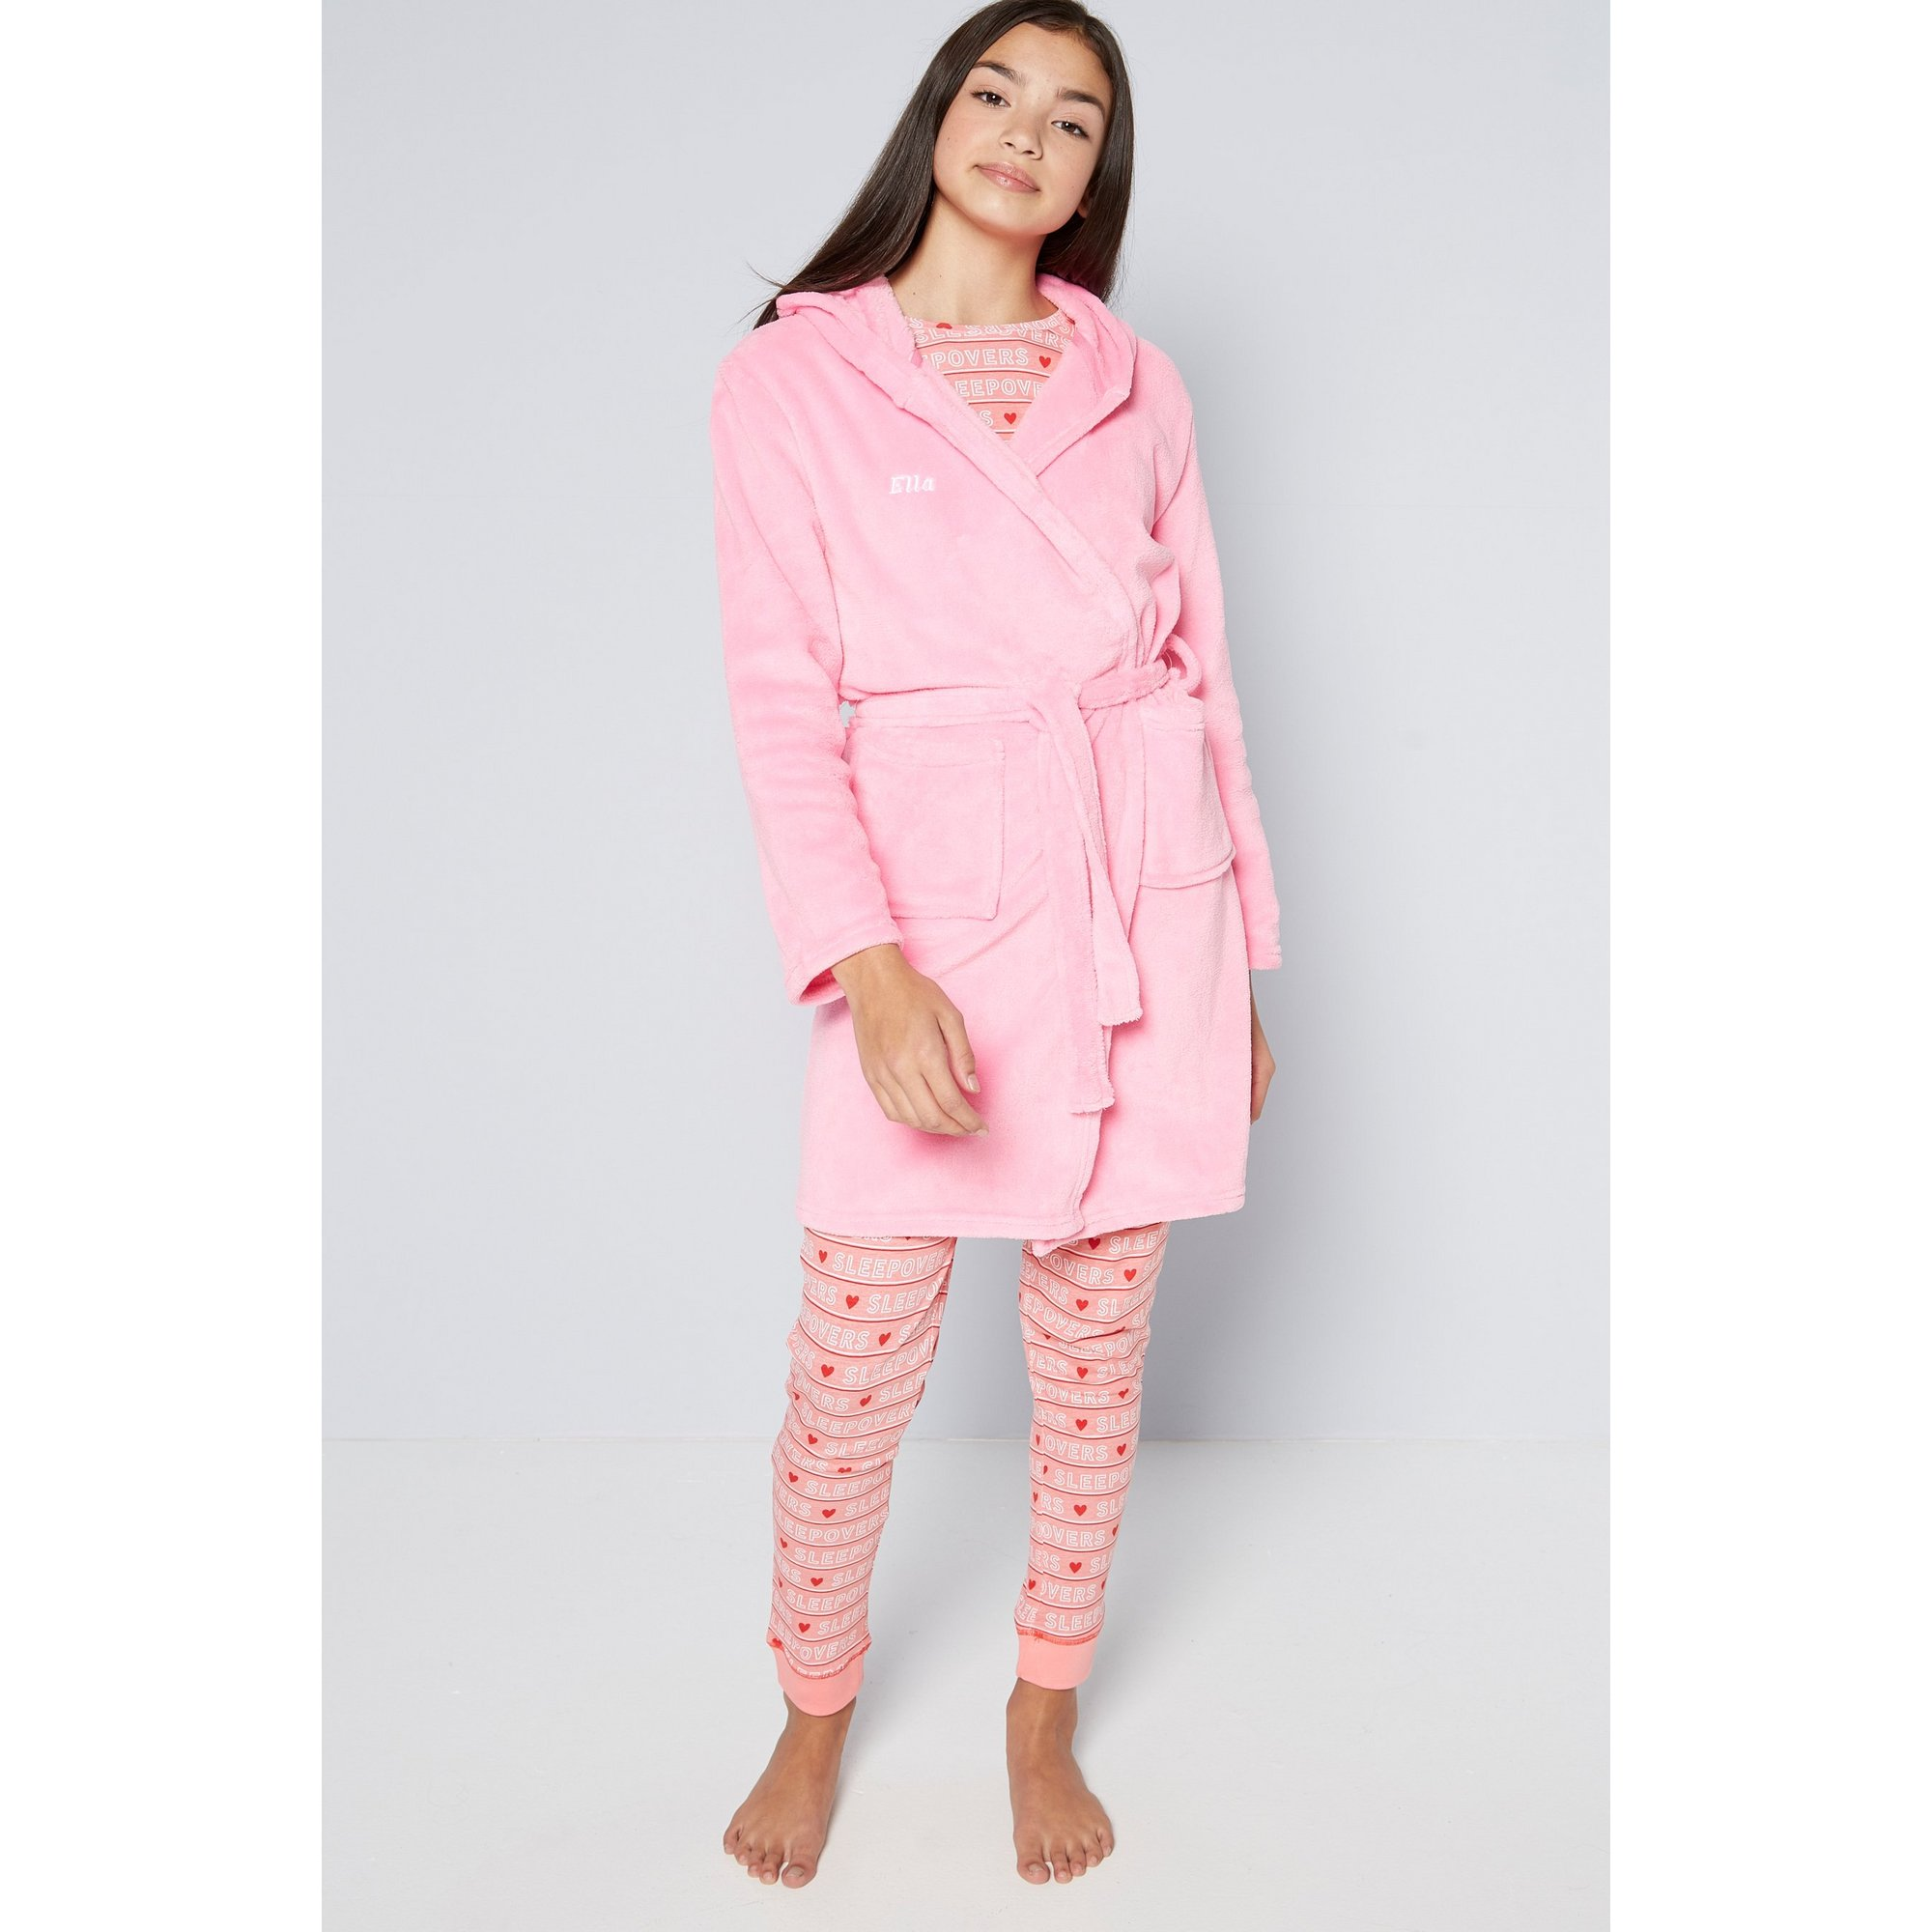 Image of Embroidered Personalised Girls Bright Pink Supersoft Robe